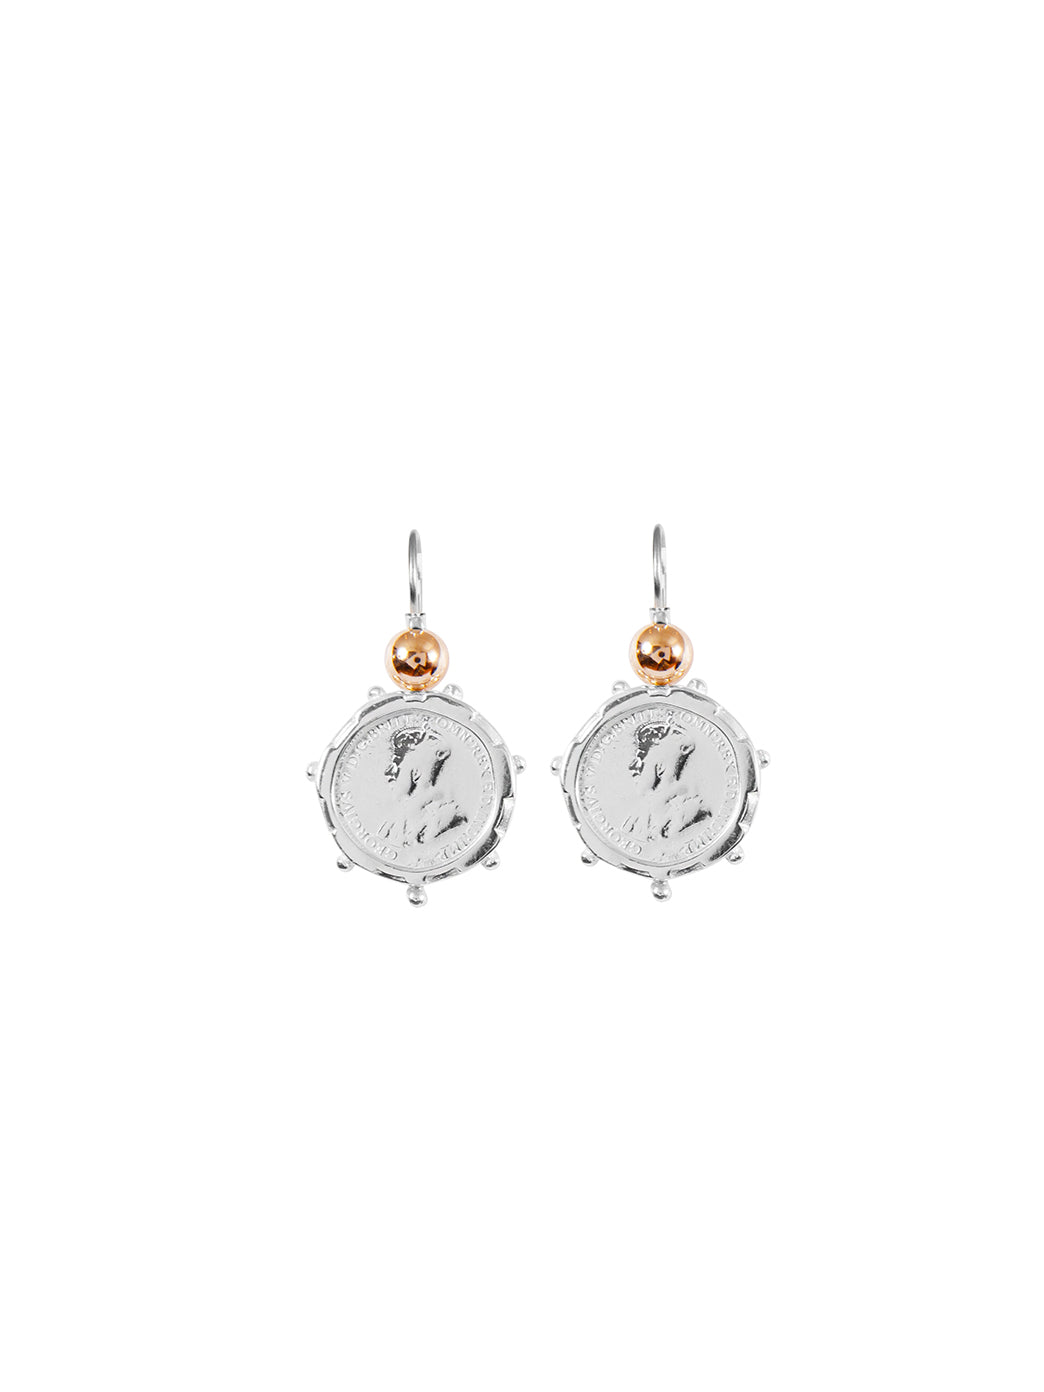 Fiorina Jewellery Silver Encased 3P Coin Earrings Gold Highlights